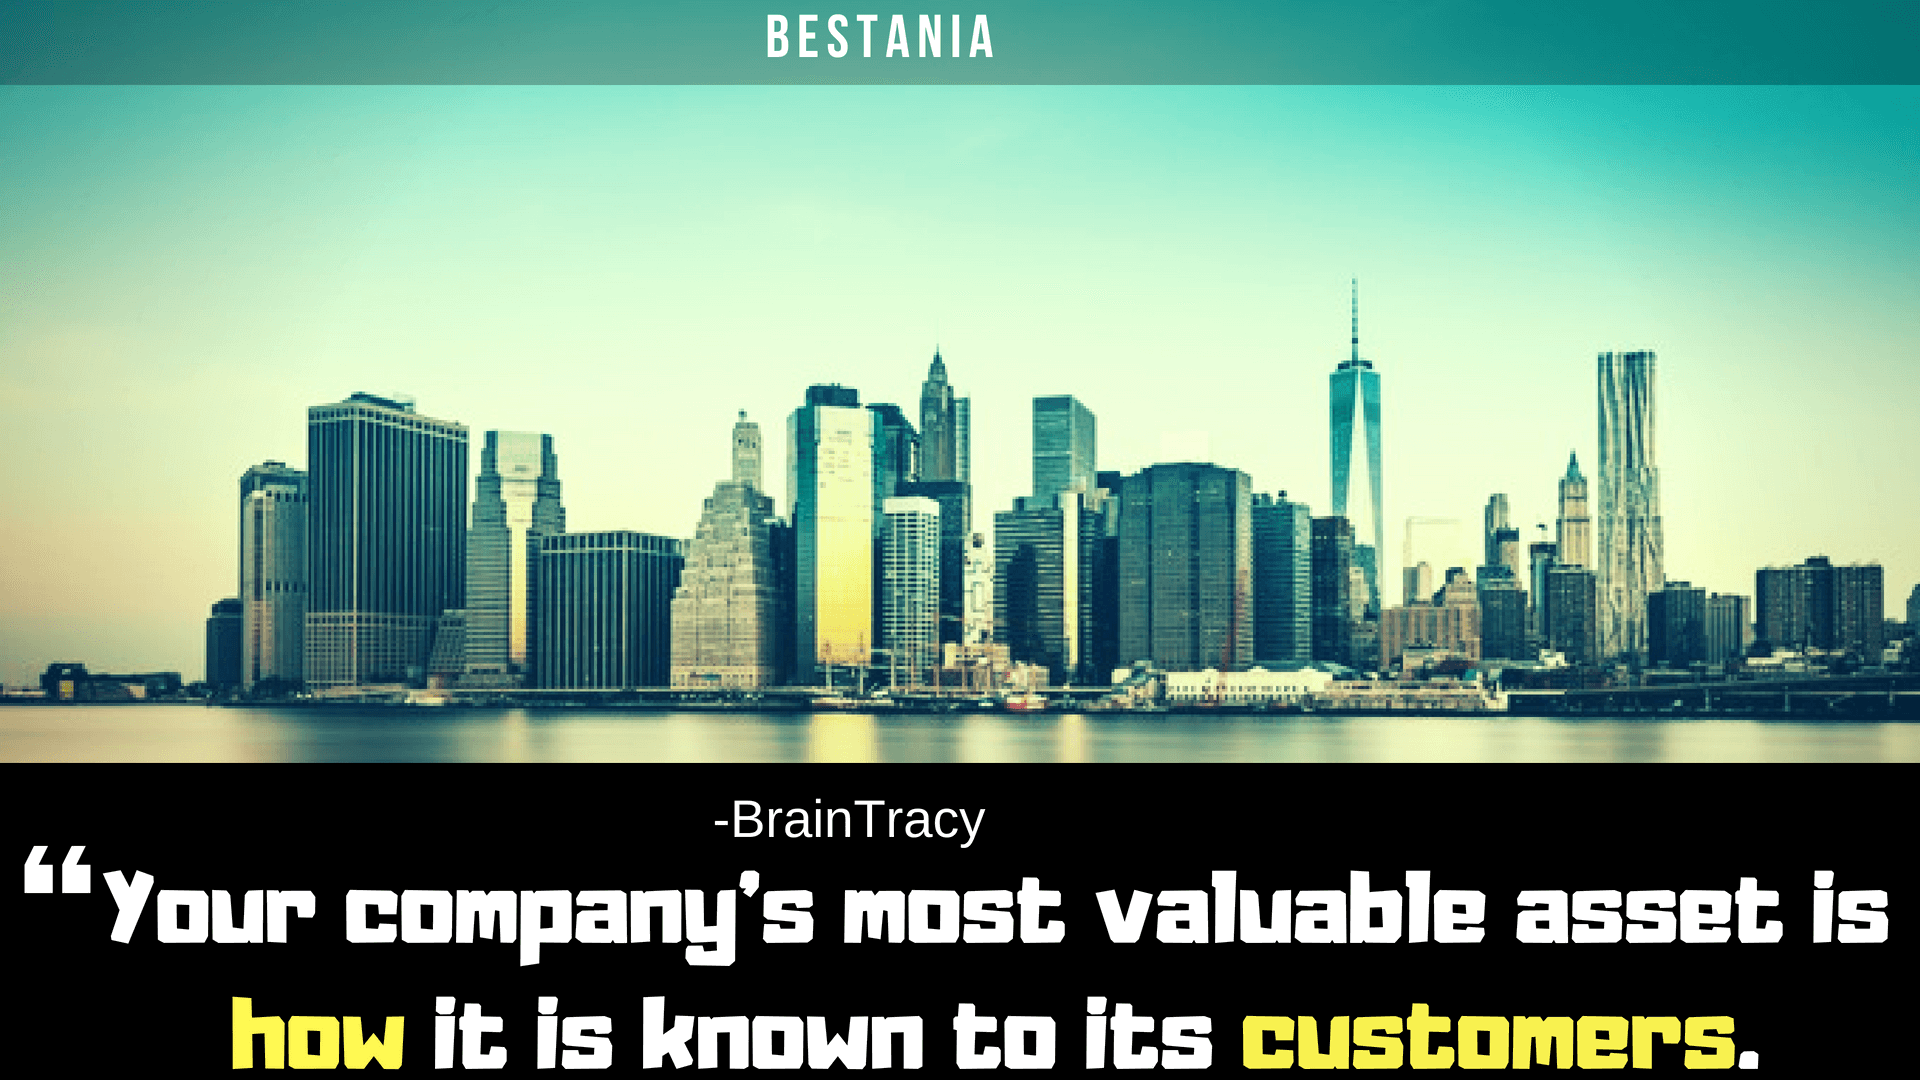 Your company's most valuable asset is how it is known to its customers.